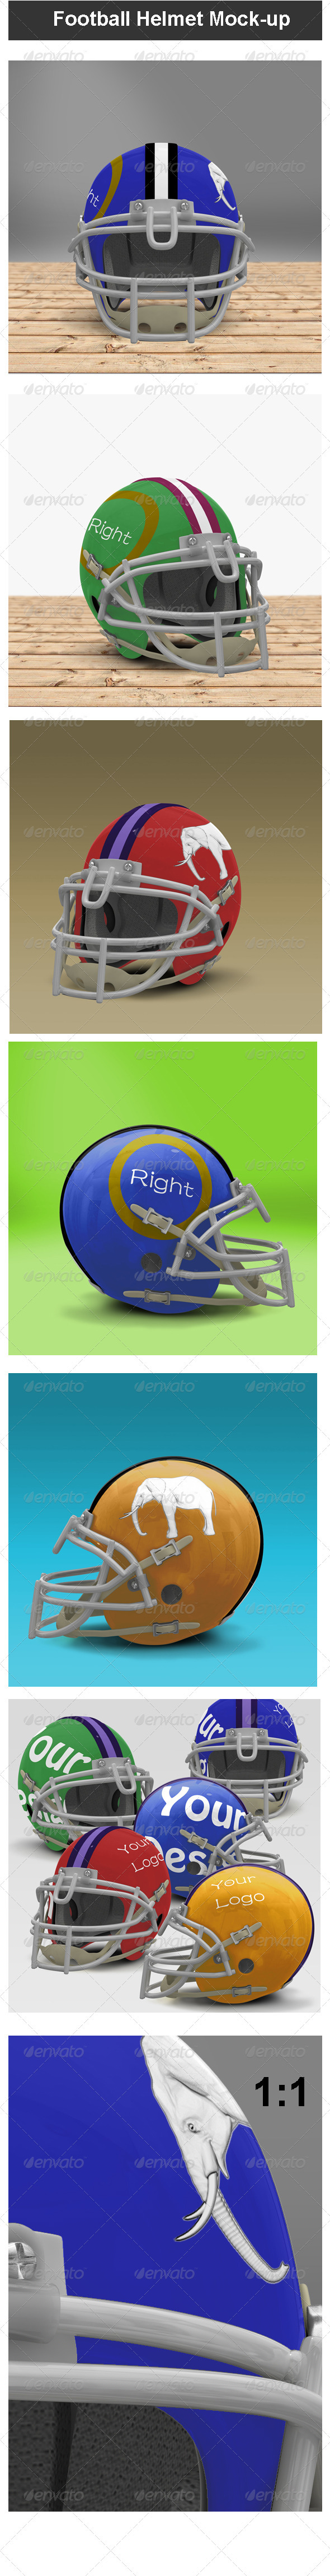 GraphicRiver Football Helmet Mock-up 3996420